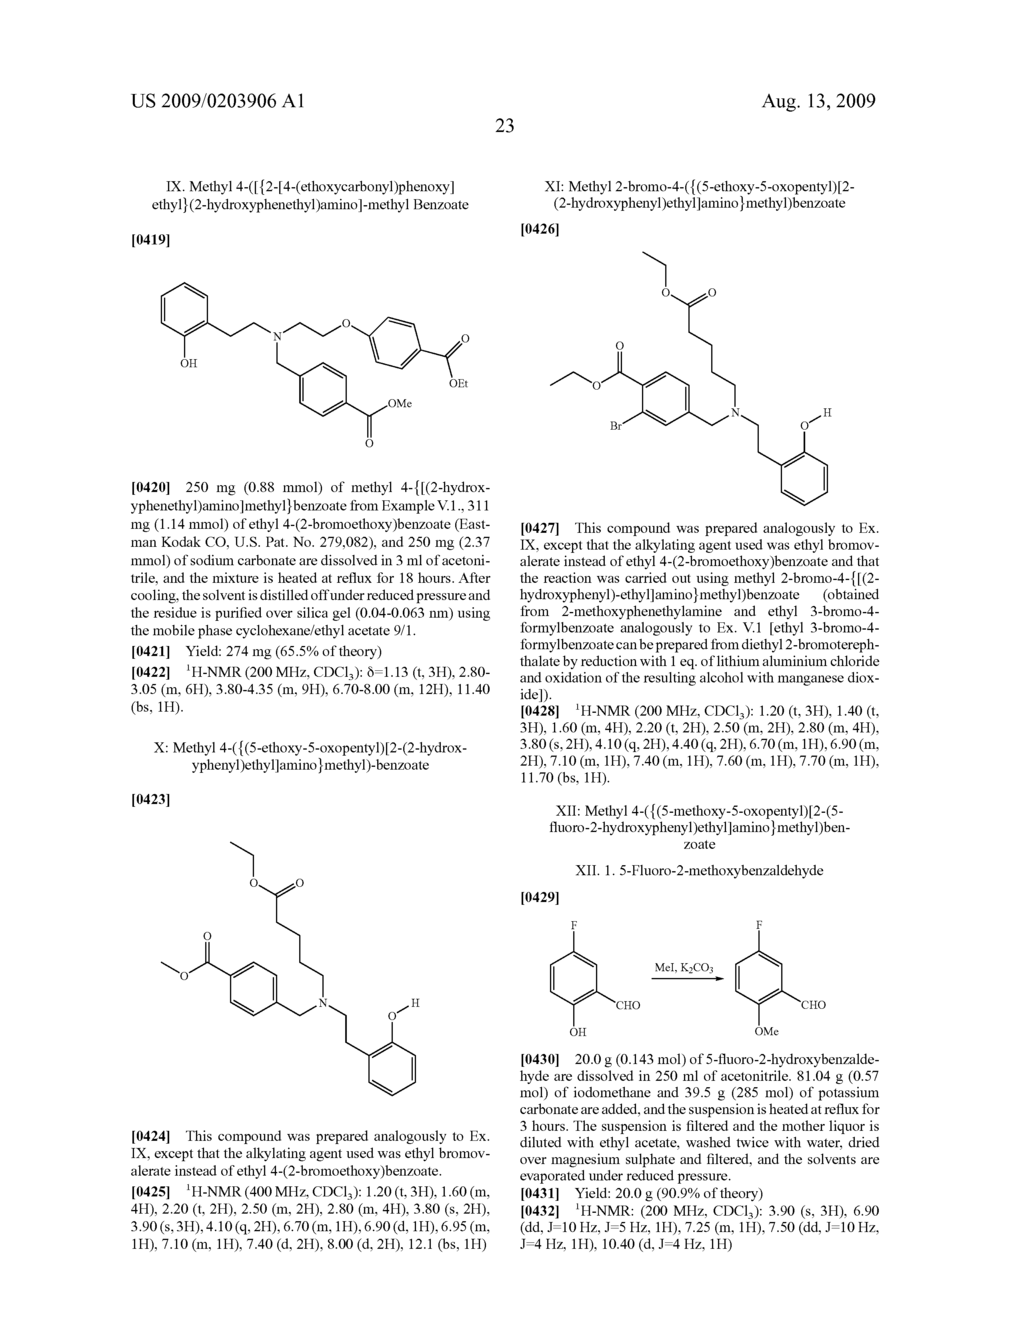 NOVEL AMINODICARBOXYLIC ACID DERIVATIVES HAVING PHARMACEUTICAL PROPERTIES - diagram, schematic, and image 24